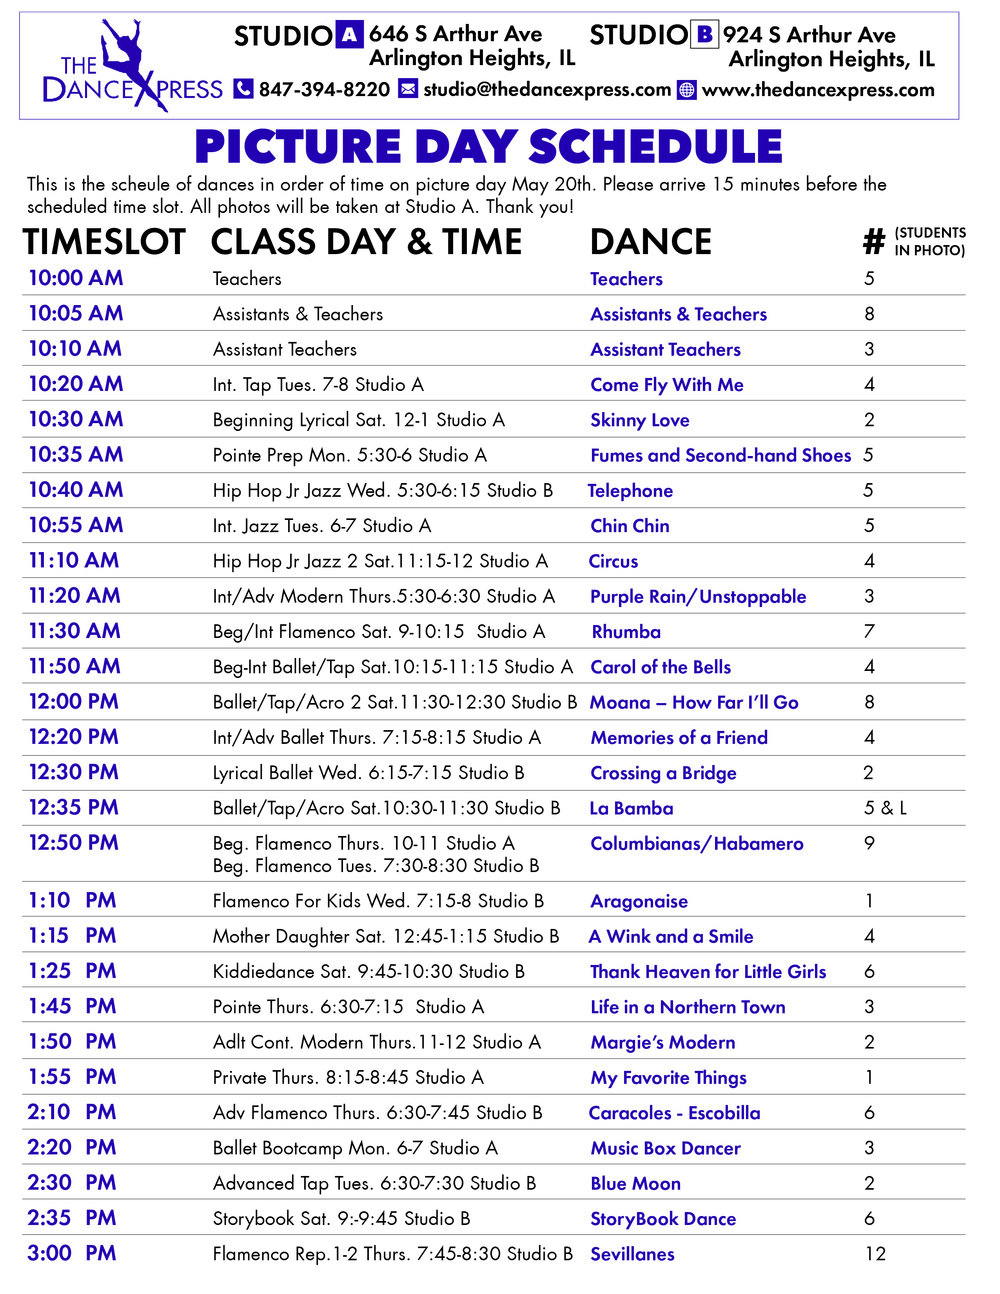 Picture Day Schedule List-05.jpg